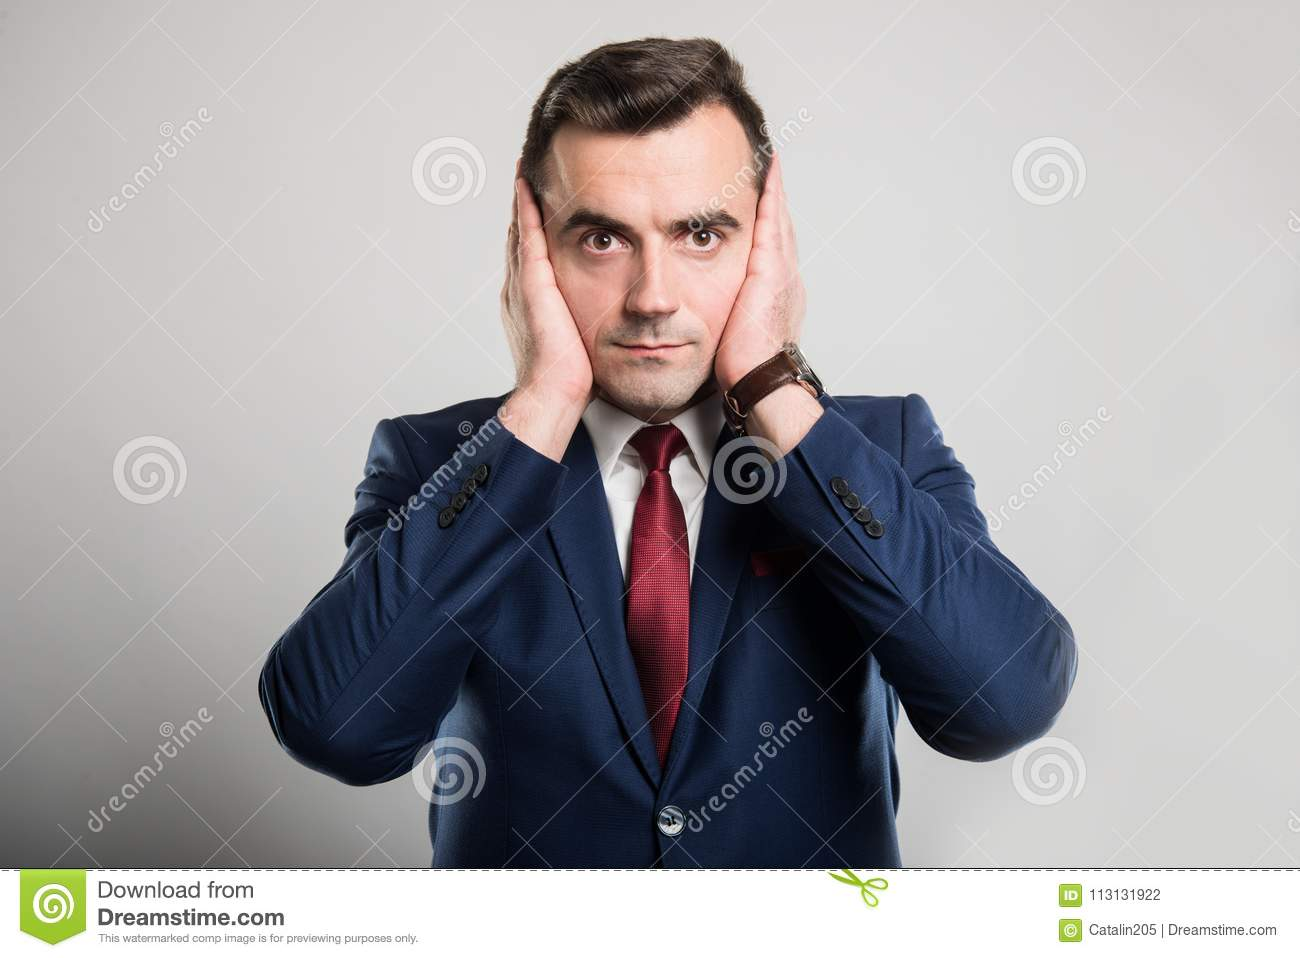 Attractive business man covering ears like deaf gesture